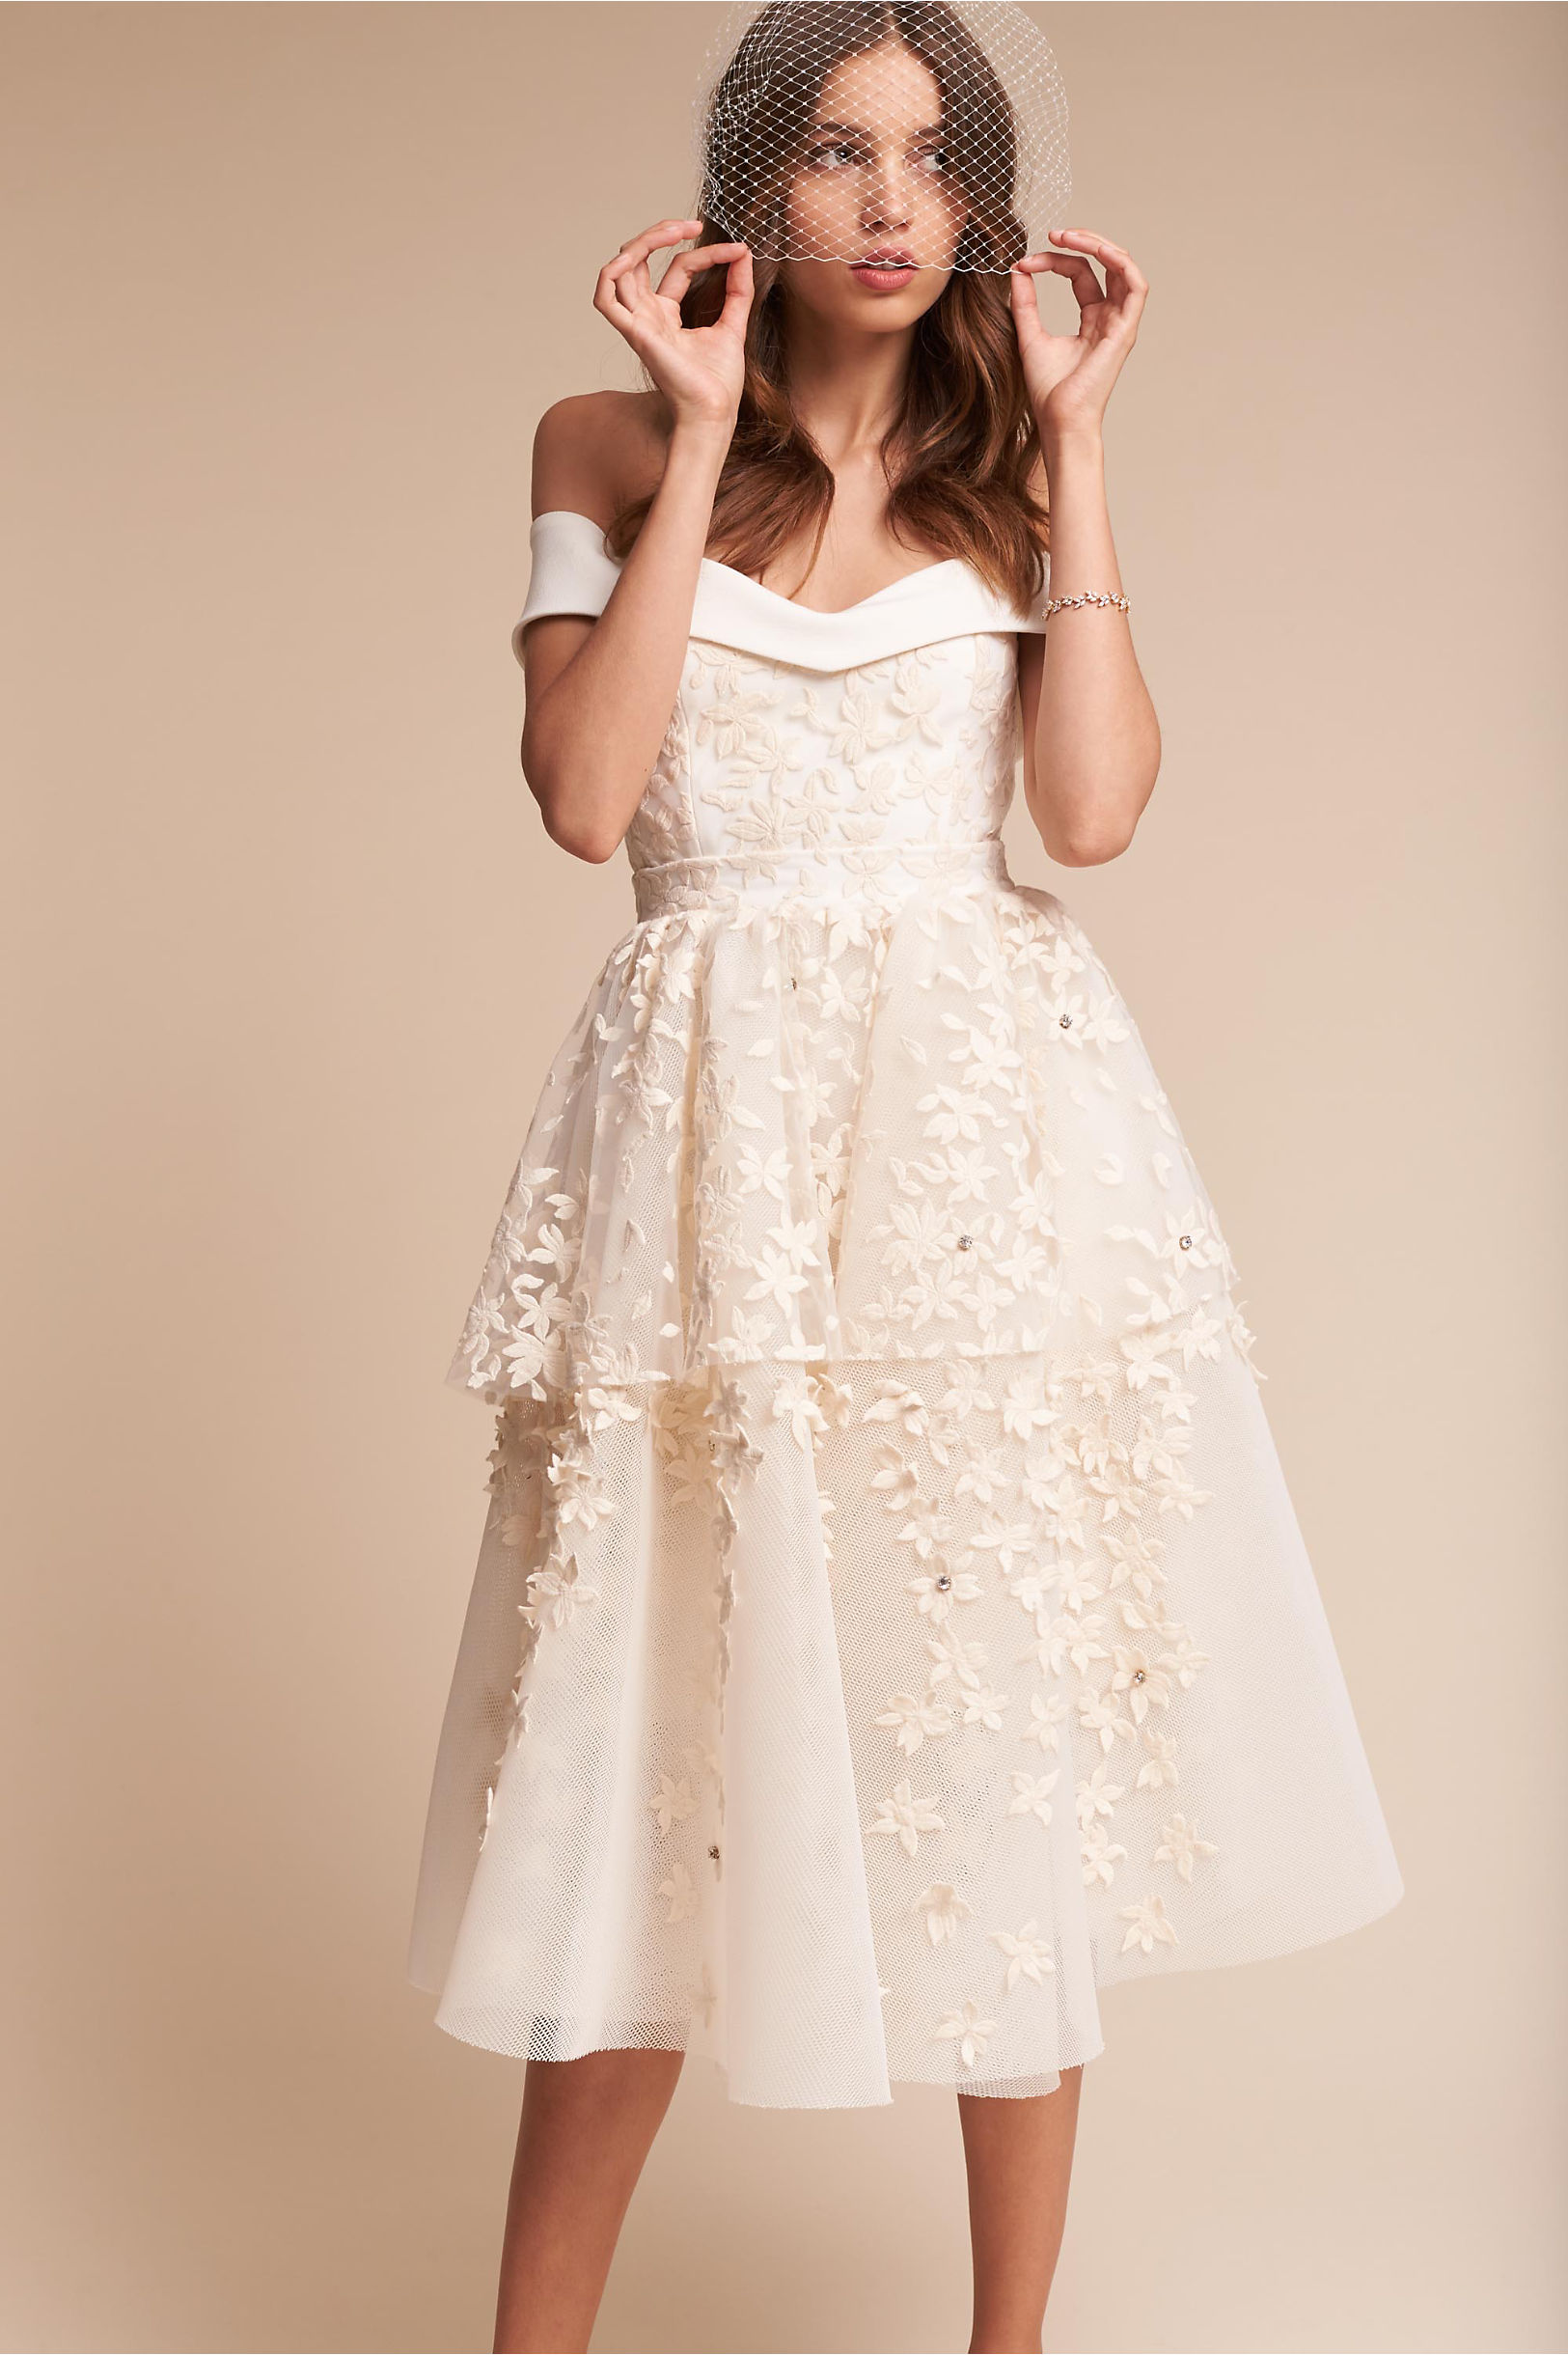 short white wedding dresses 25 astonishing vintage wedding dresses from modern wedding 7365